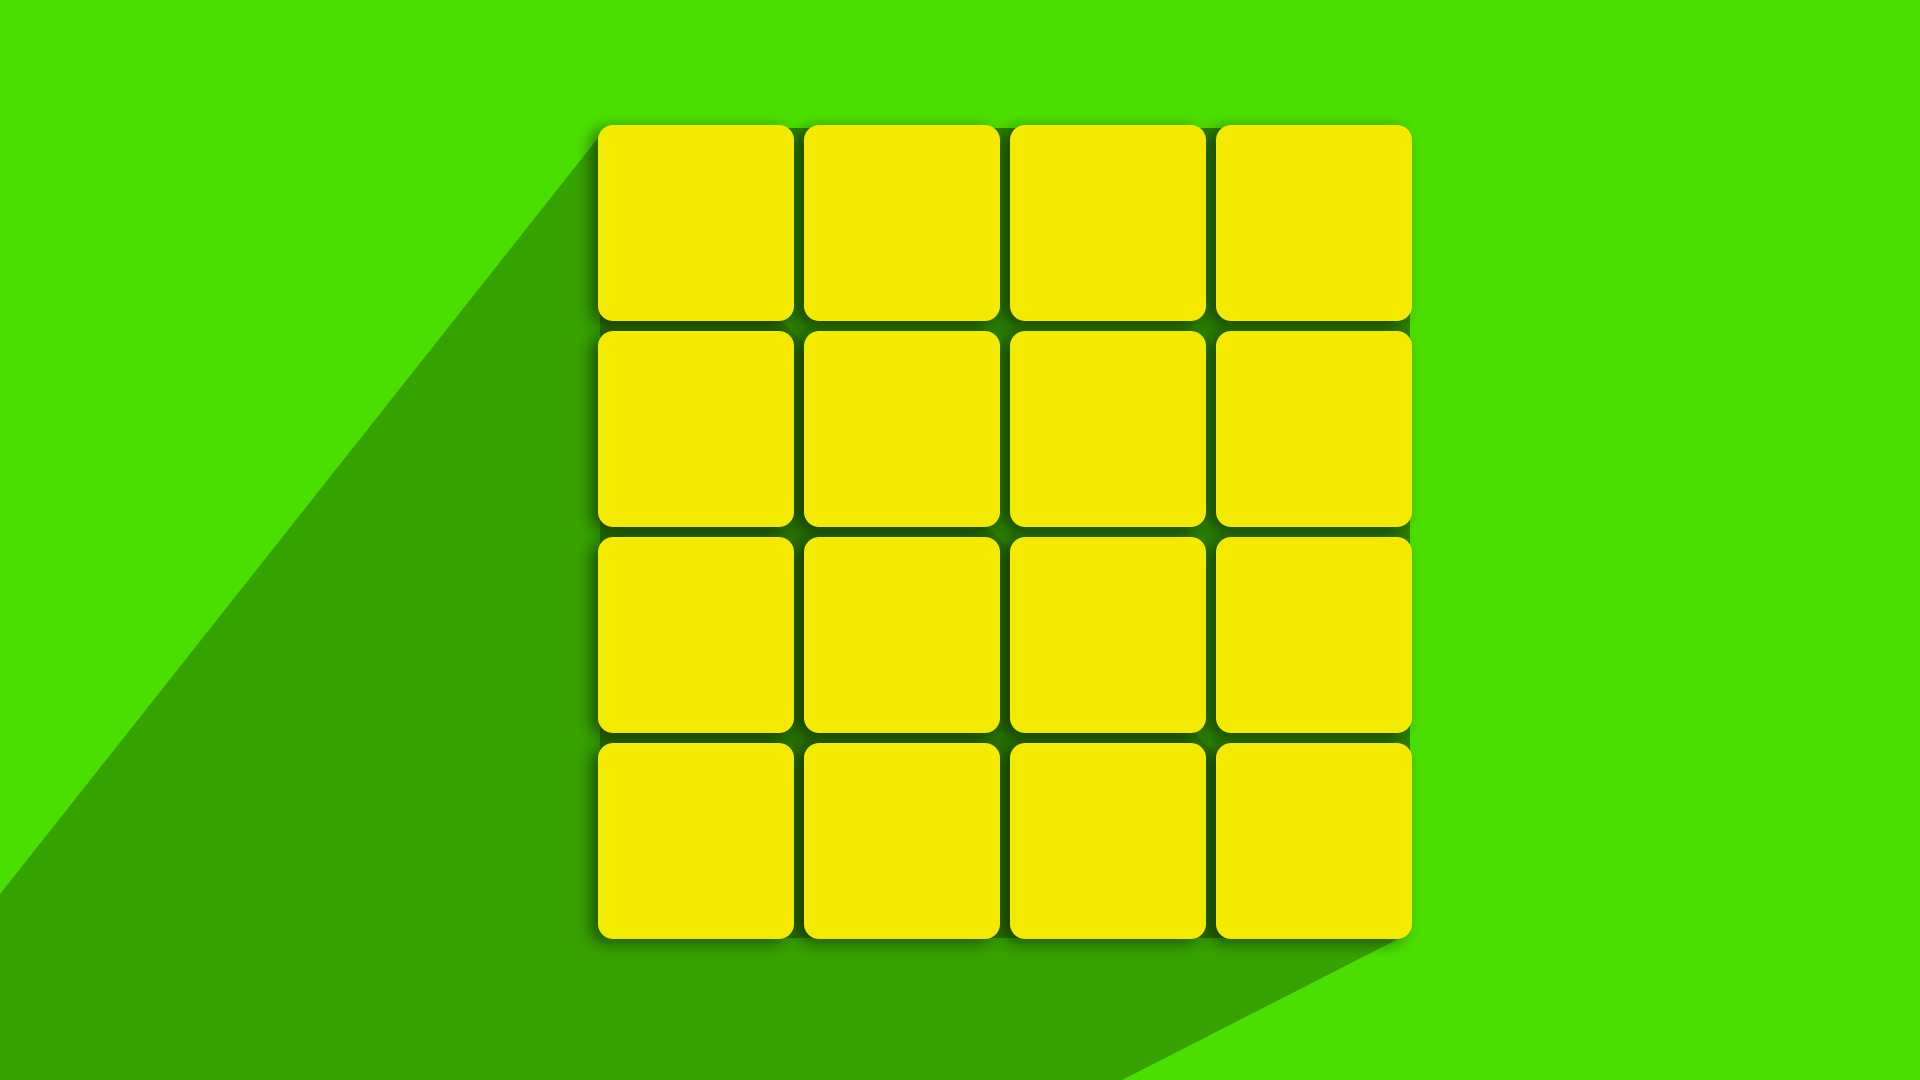 Beginner's Method for Solving the 4x4 Cube